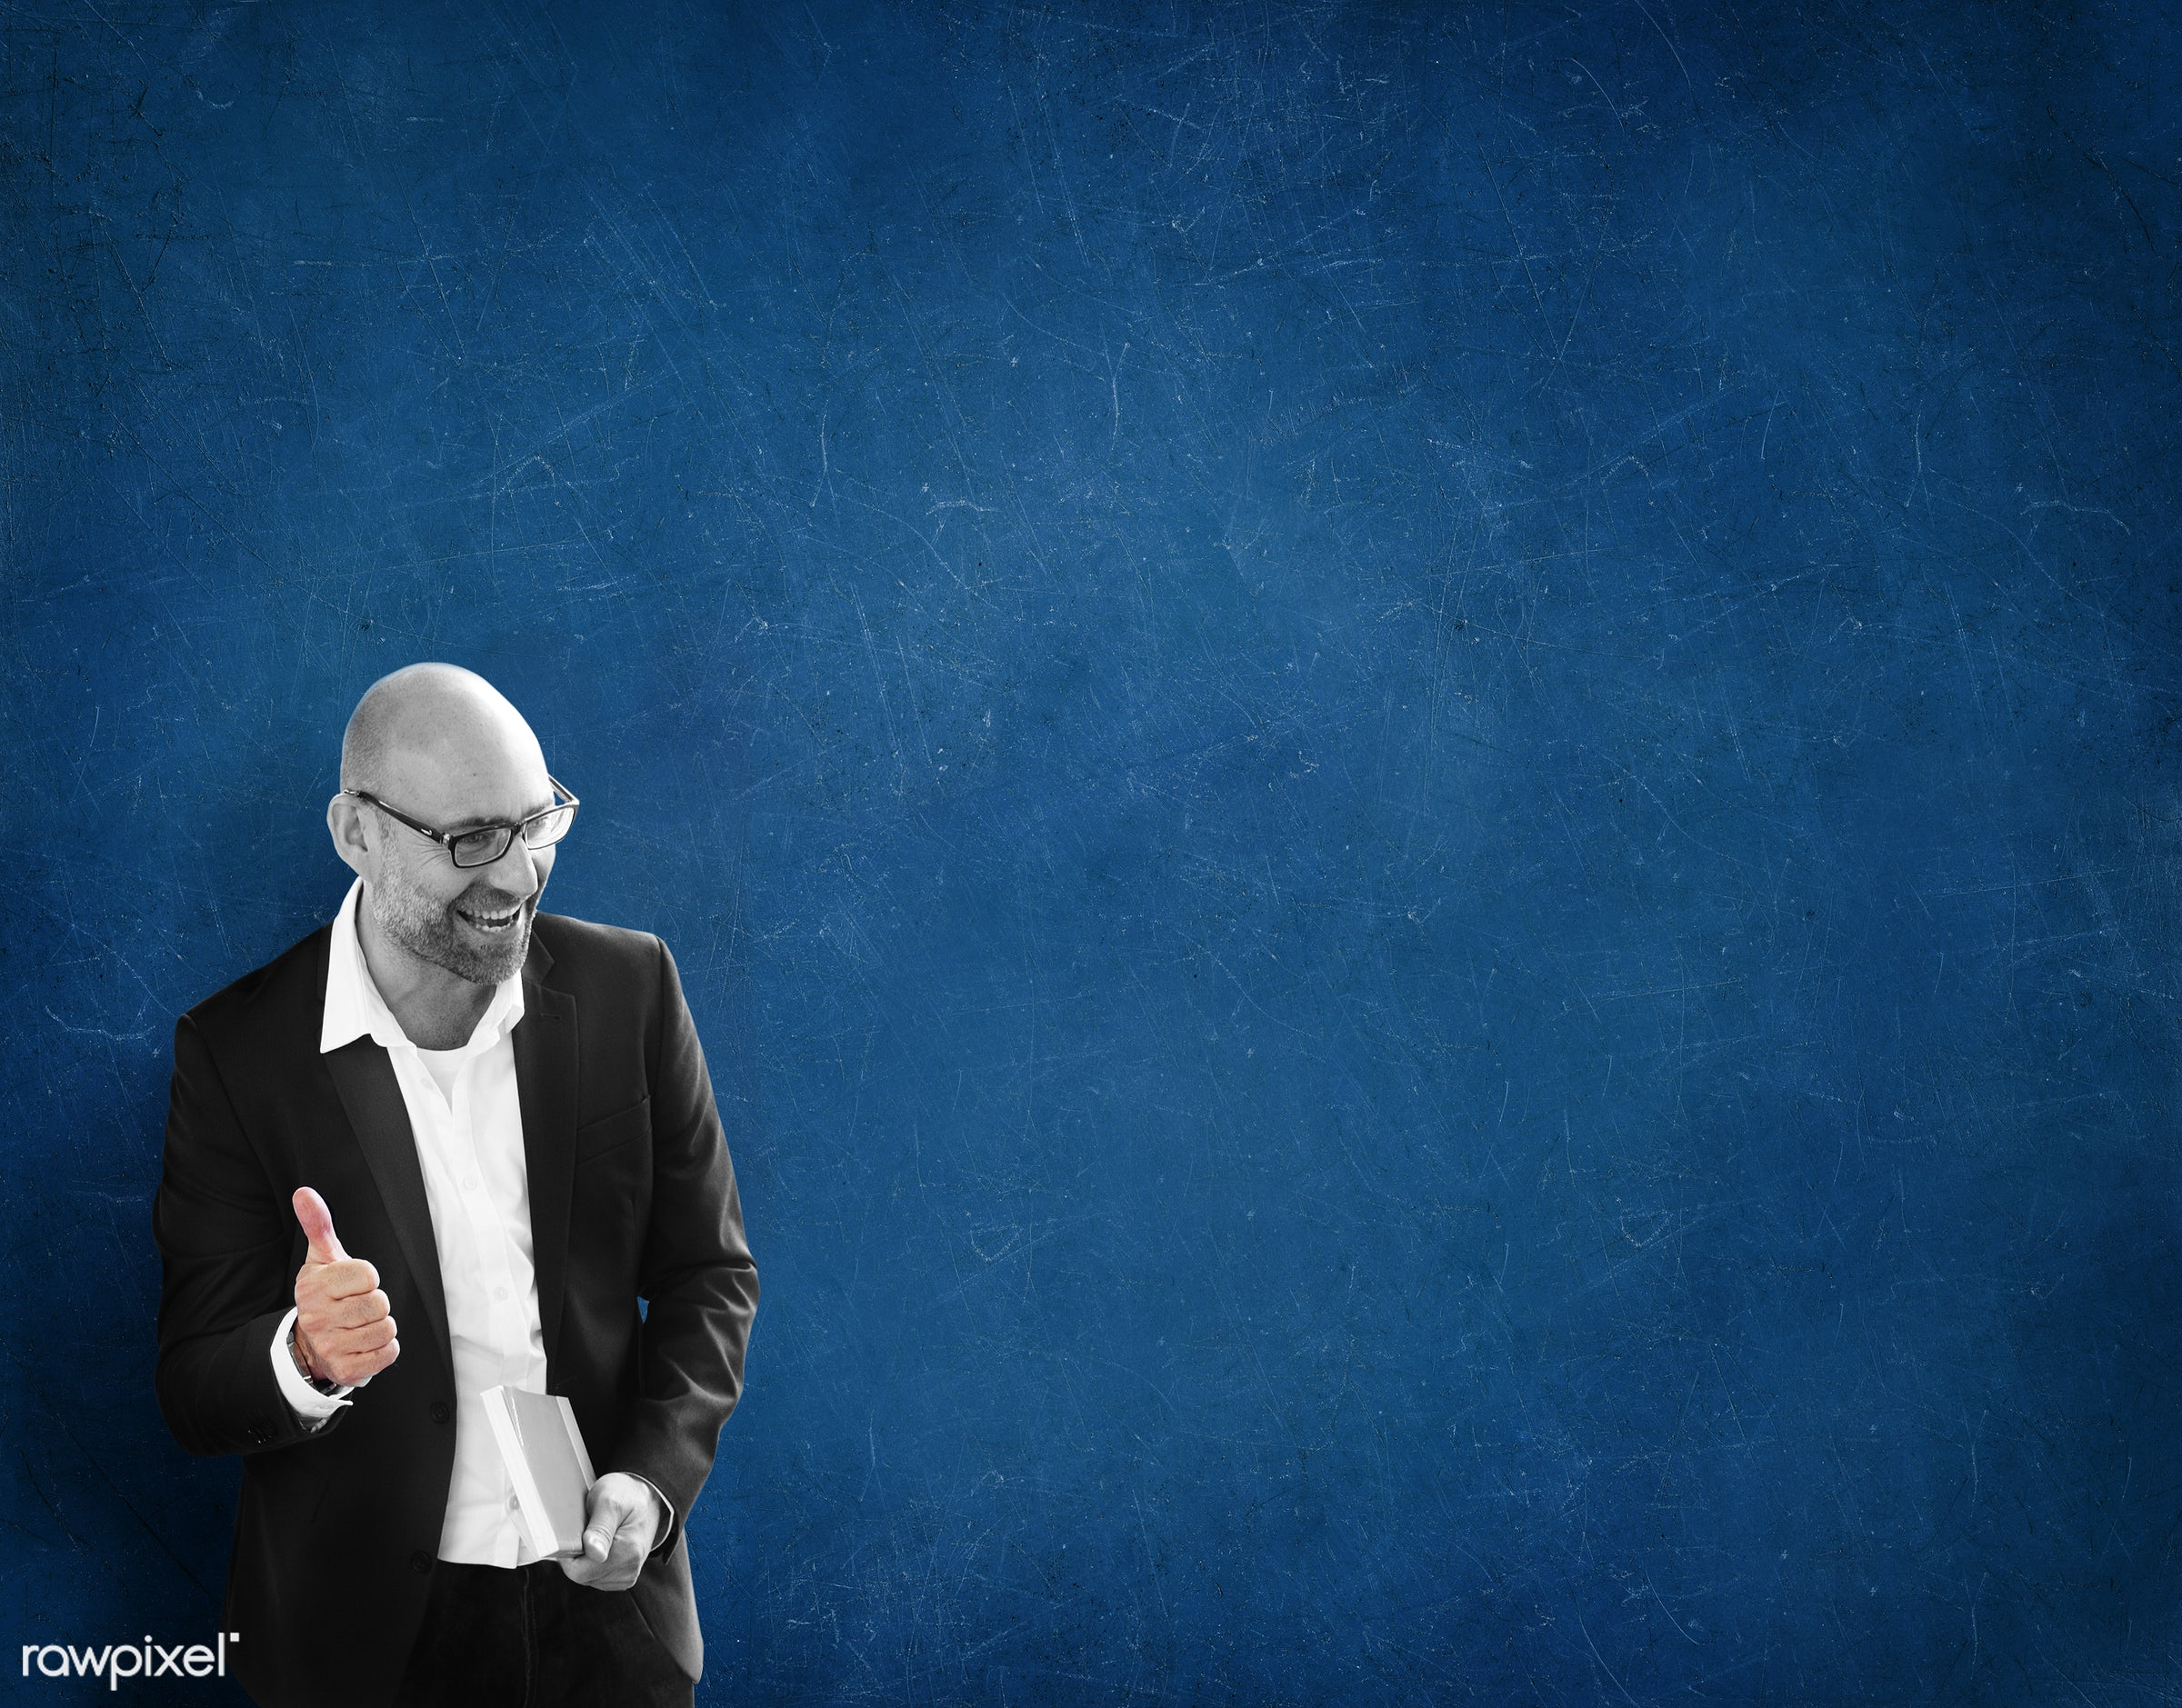 abstract, alone, backgrounds, blue, business, businessman, career, corporate, expert, expertise, happiness, job, light,...